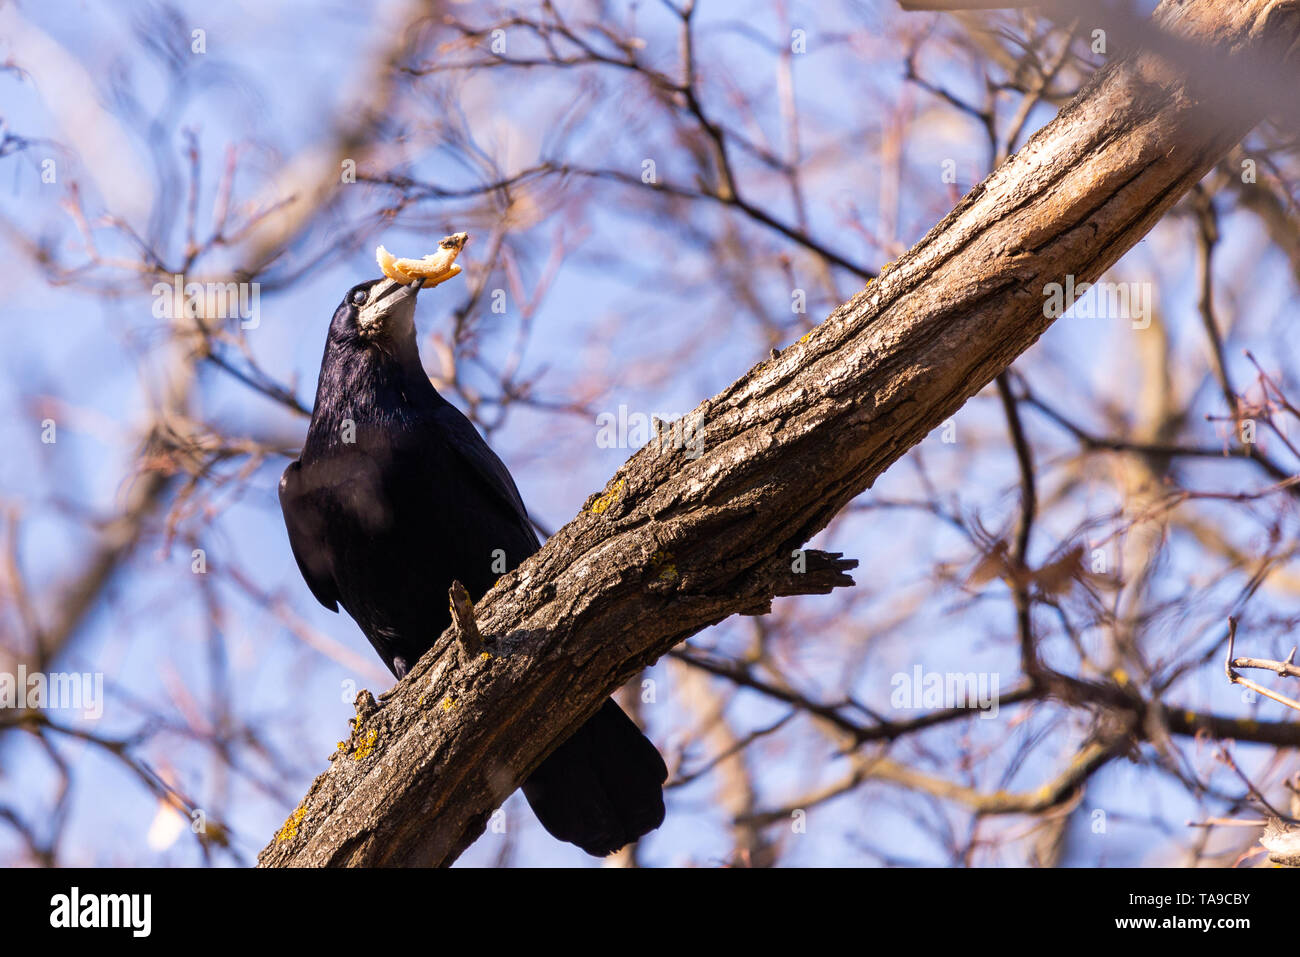 The rook or Corvus frugilegus is a member of the family Corvidae in the passerine order of birds. Stock Photo